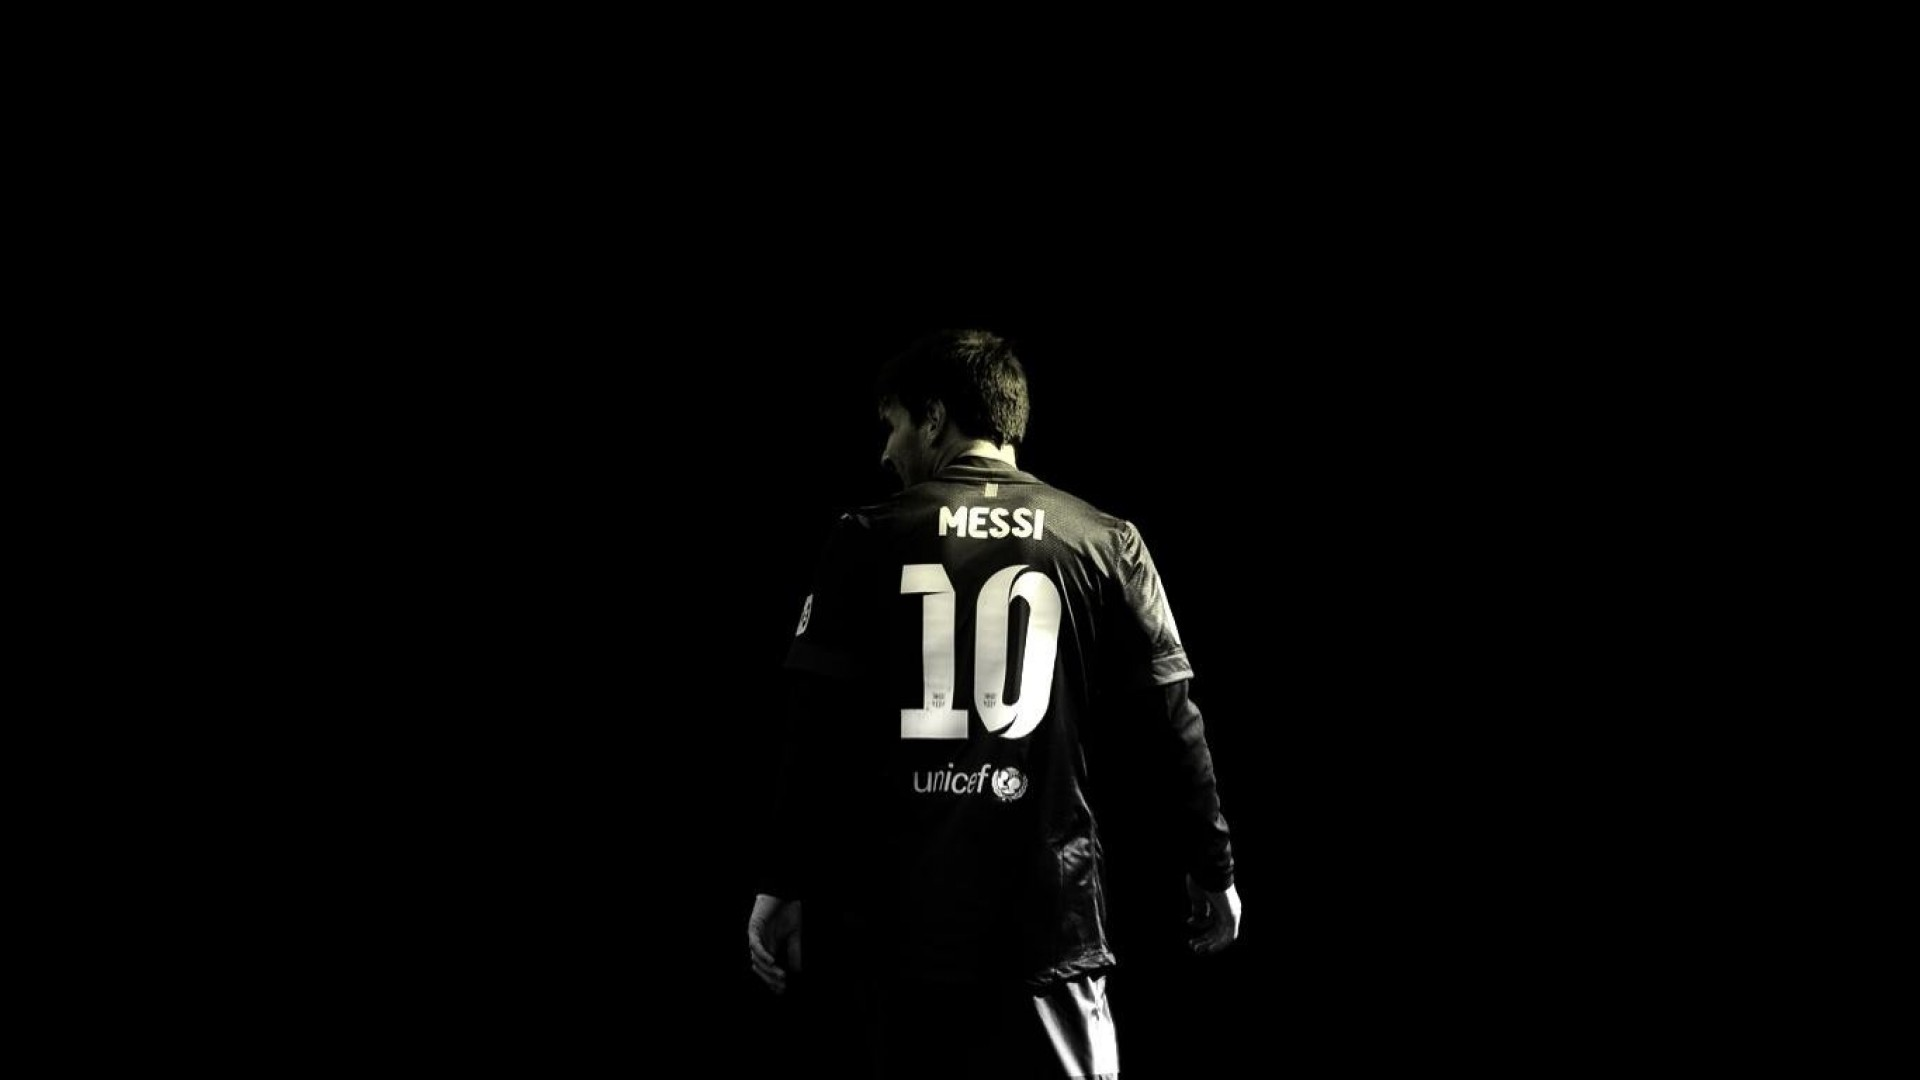 Lionel Messi Hd Wallpapers 1080P   1803853 1920x1080